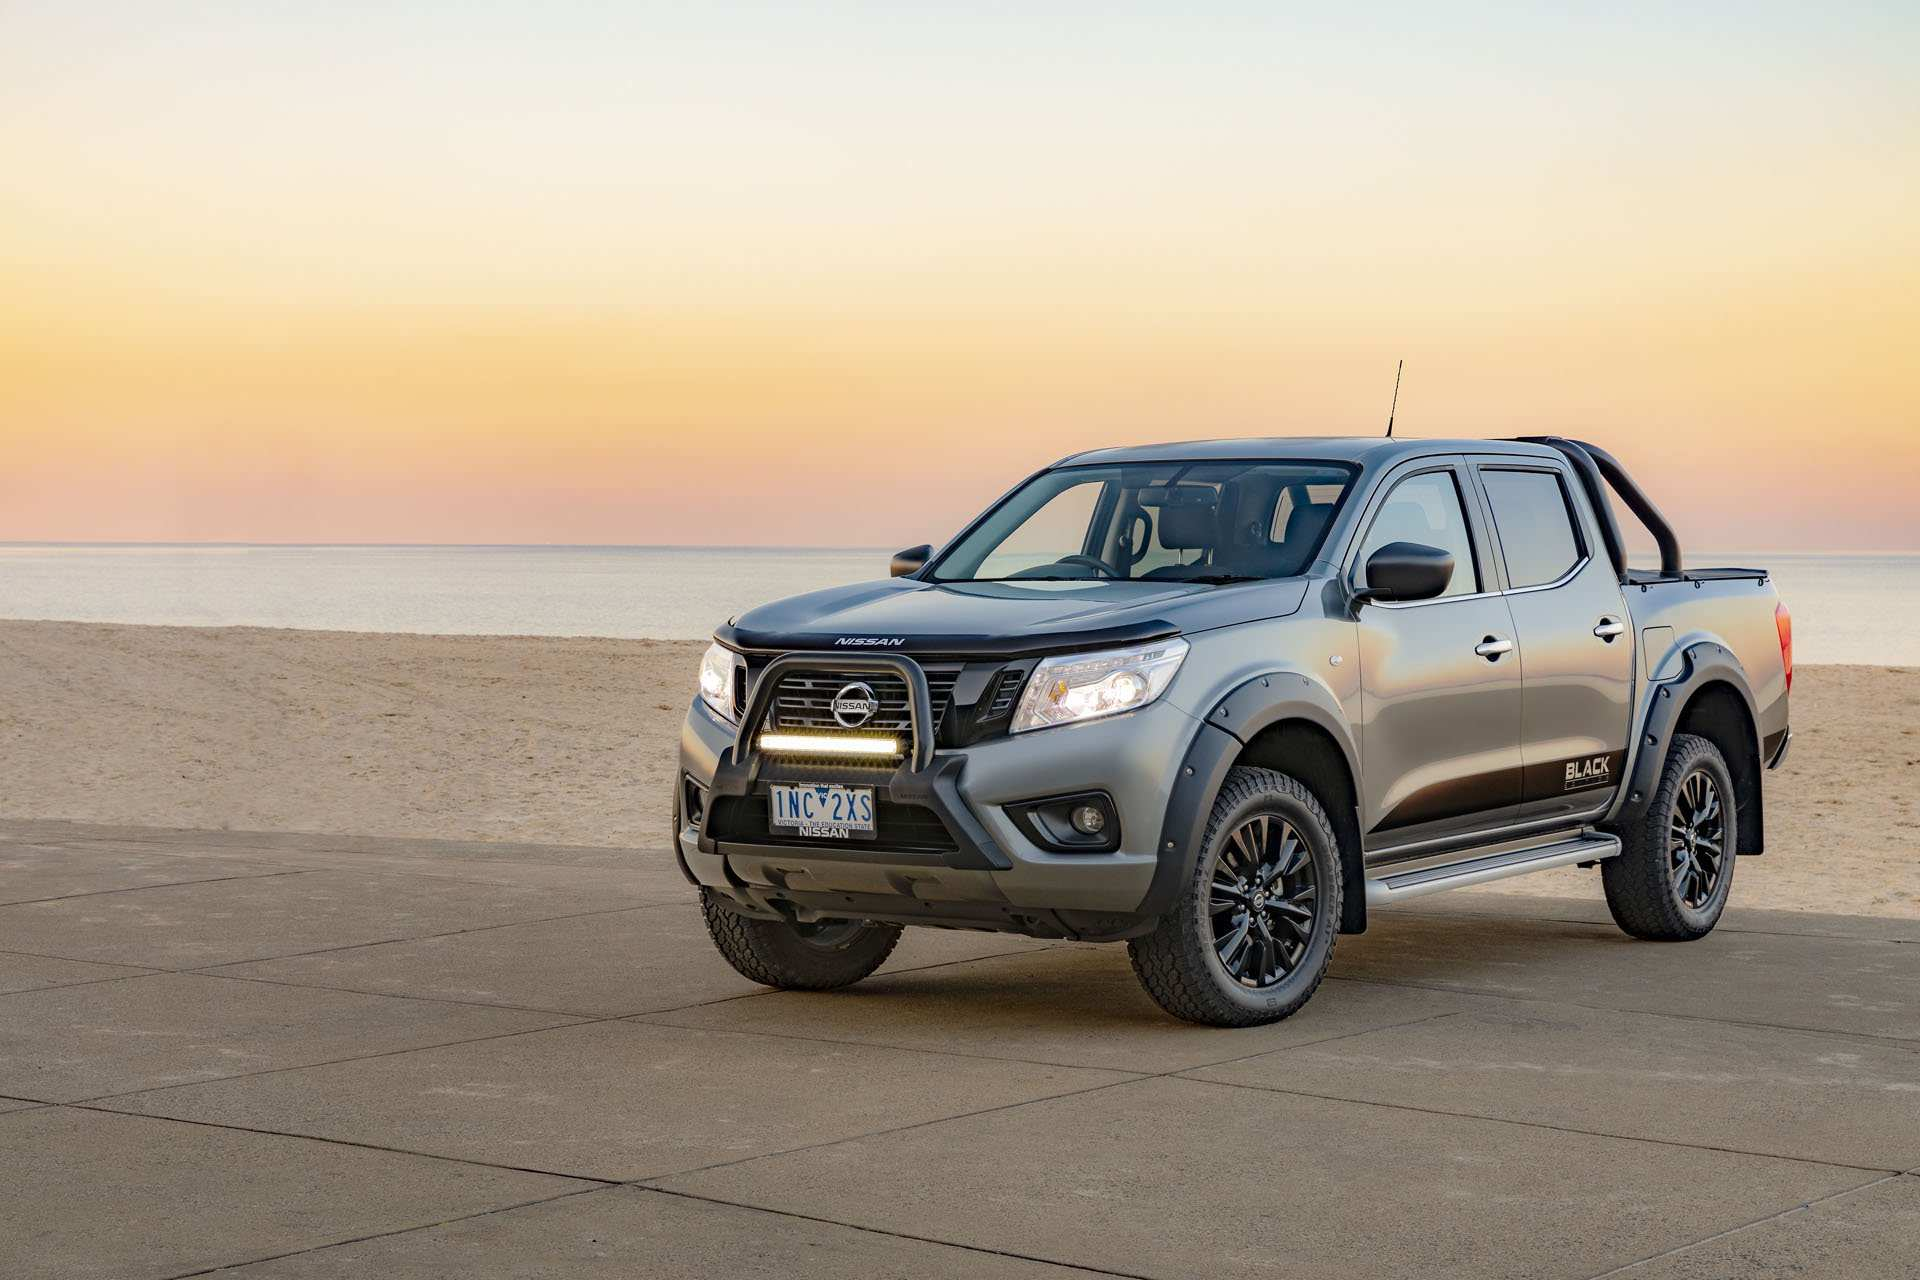 71 All New Pictures Of 2020 Nissan Frontier Spy Shoot